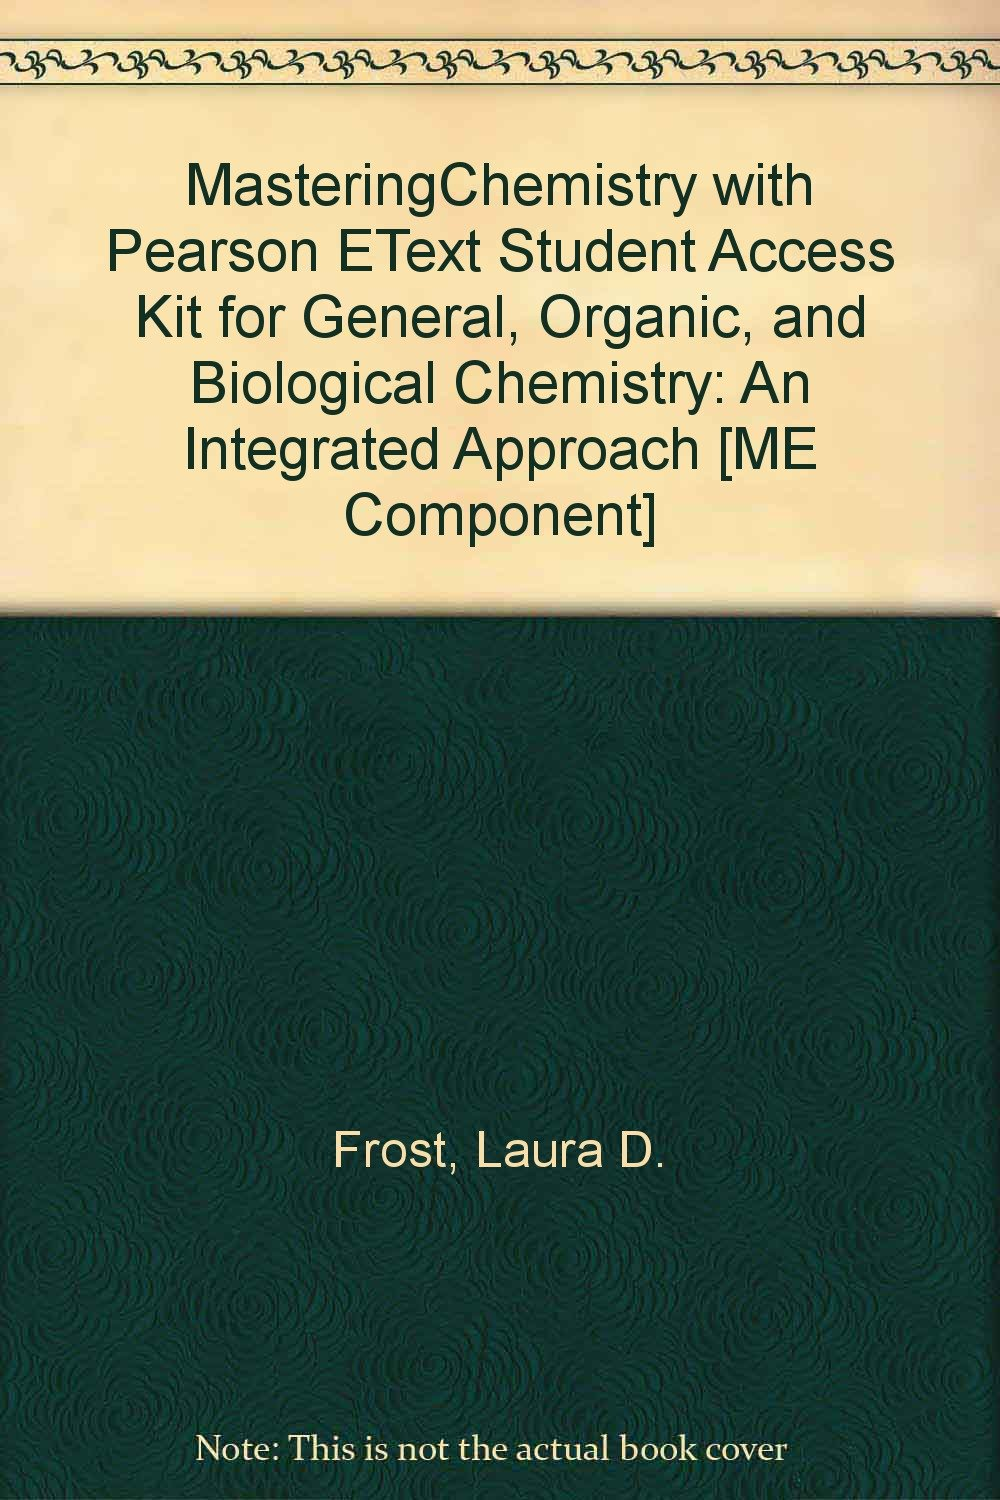 MasteringChemistry with Pearson eText Student Access Kit for General, Organic, and Biological Chemistry: An Integrated Approach [ME component] pdf epub